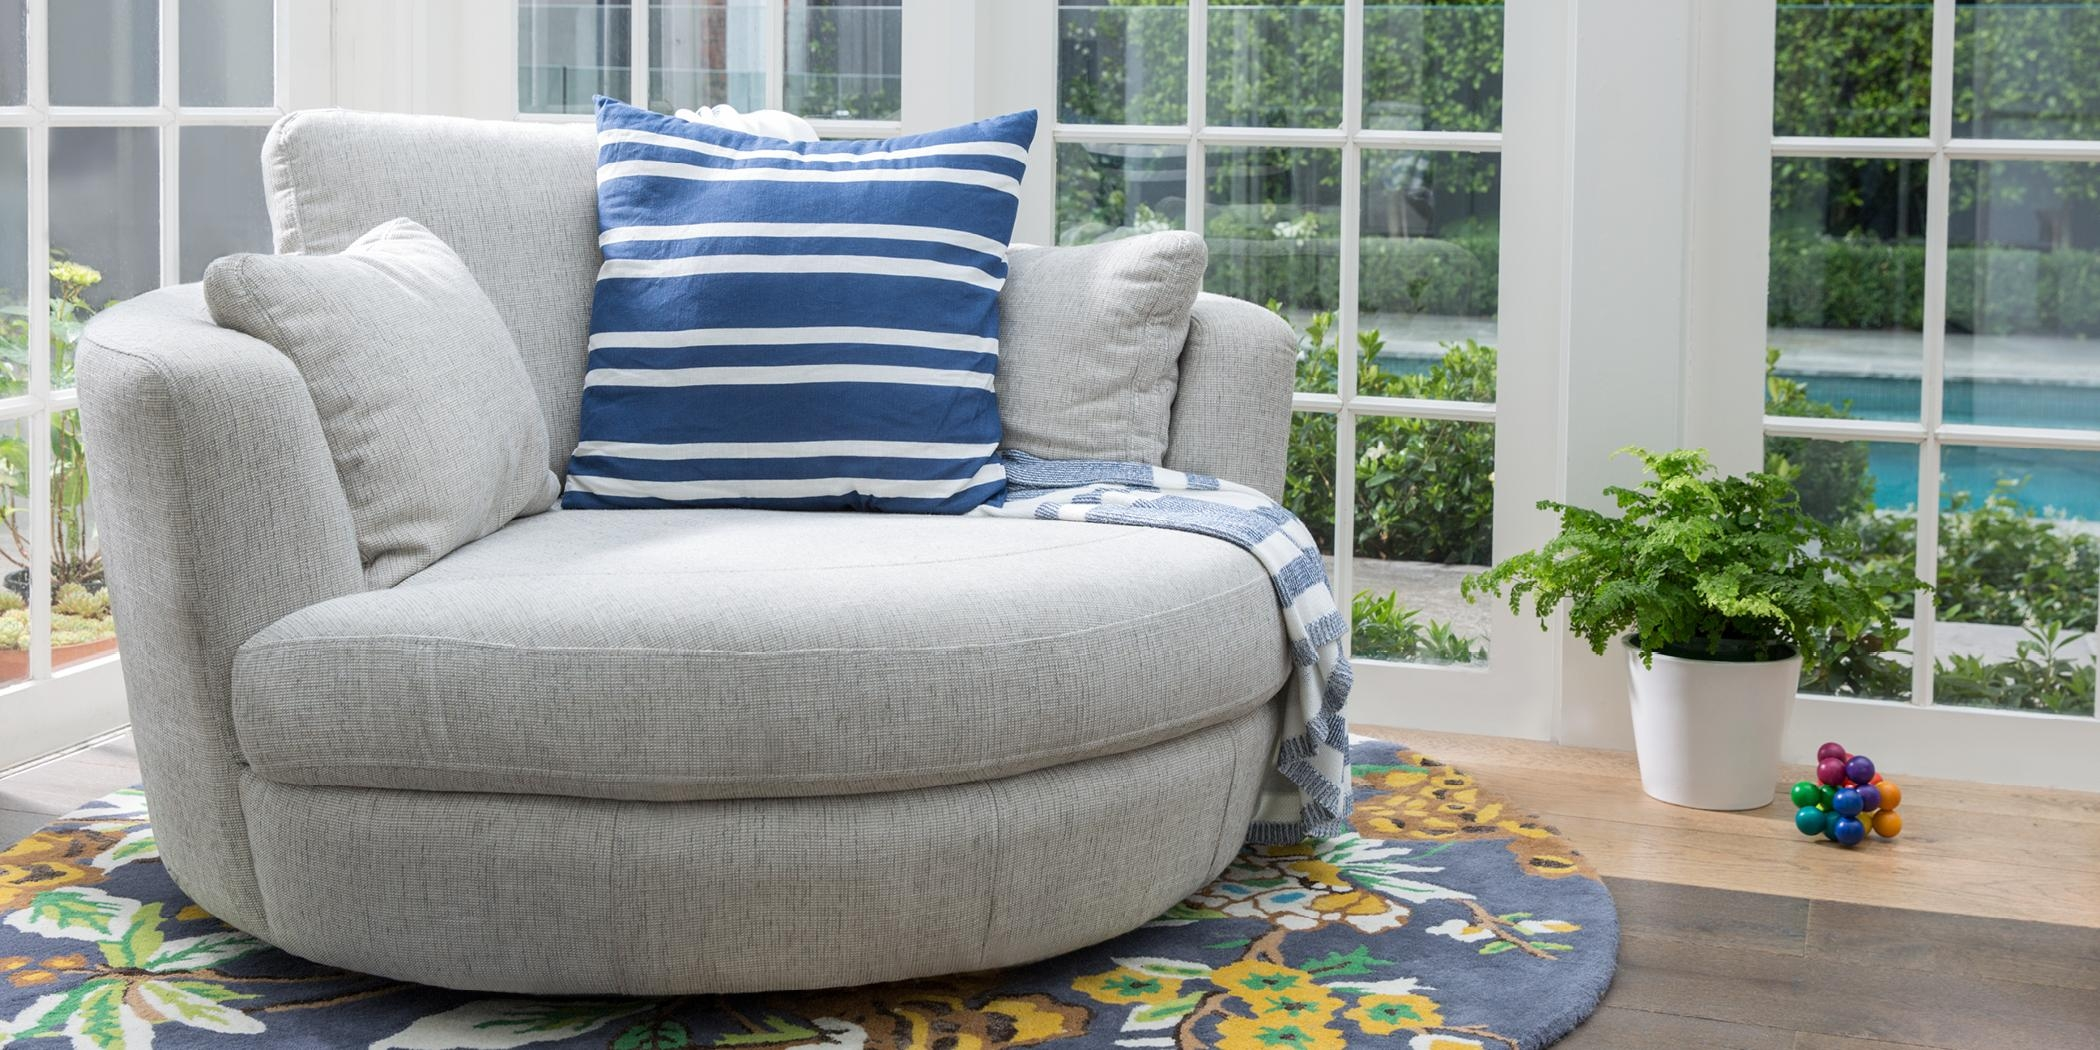 Snuggle Chair | Leather, Fabric, Occasional Chairs | Plush Furniture Within Snuggle Sofas (View 8 of 20)